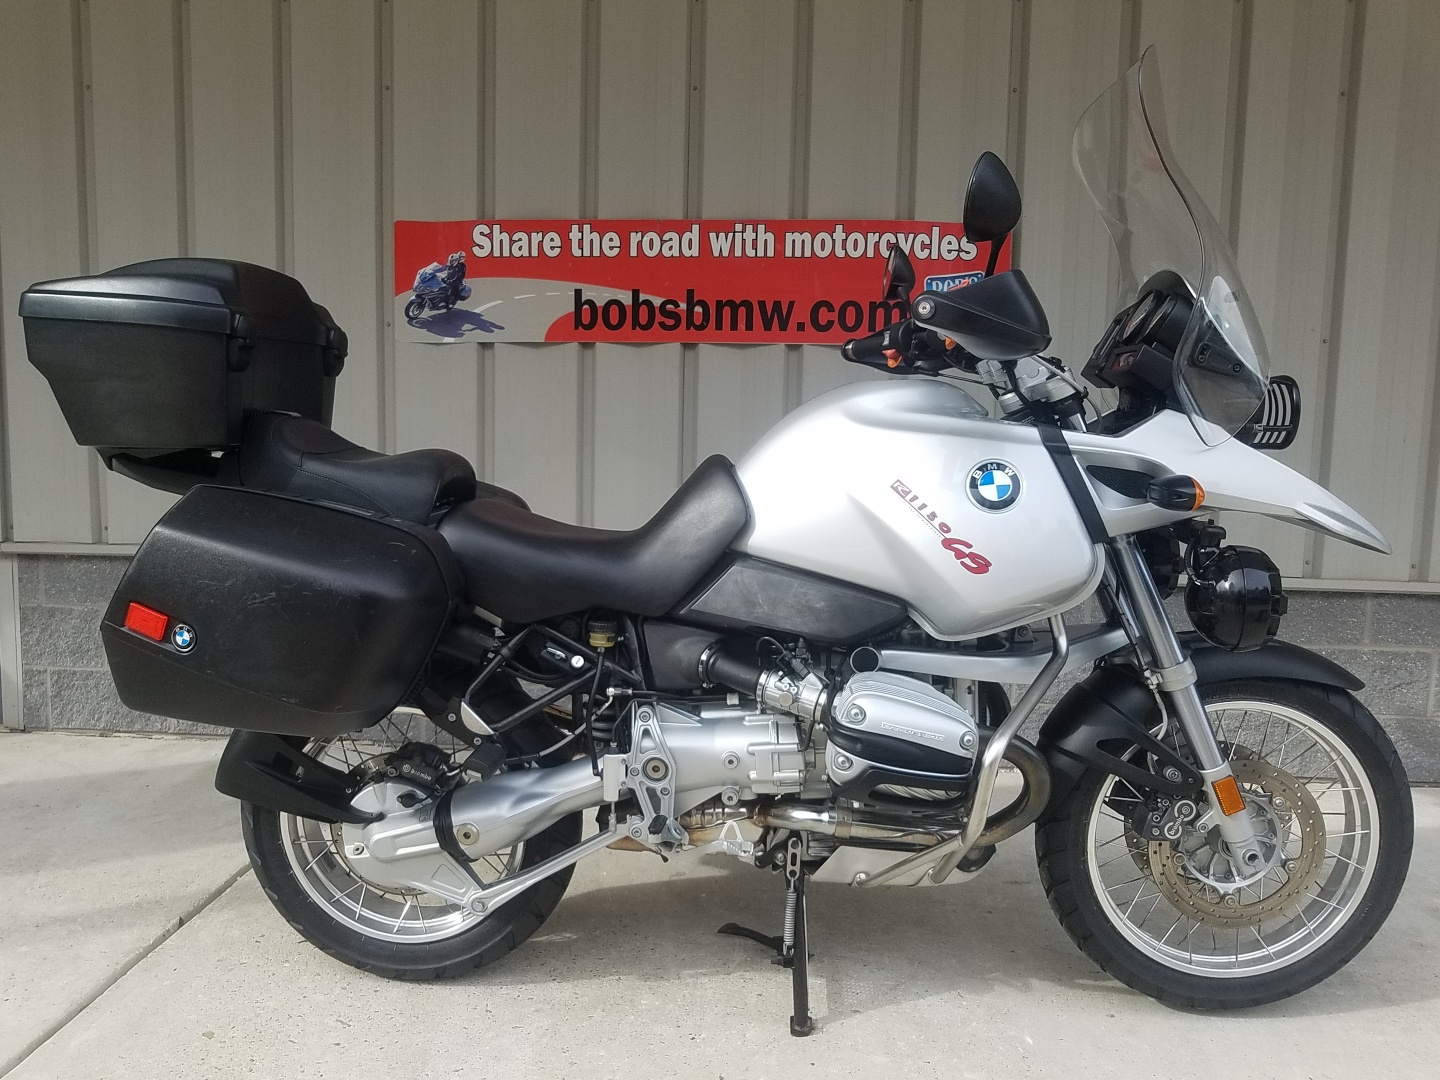 2001 BMW R1150GS Adventure | Bob's BMW Motorcycles Electrical Wiring Diagrams For Gs Motorcycles on